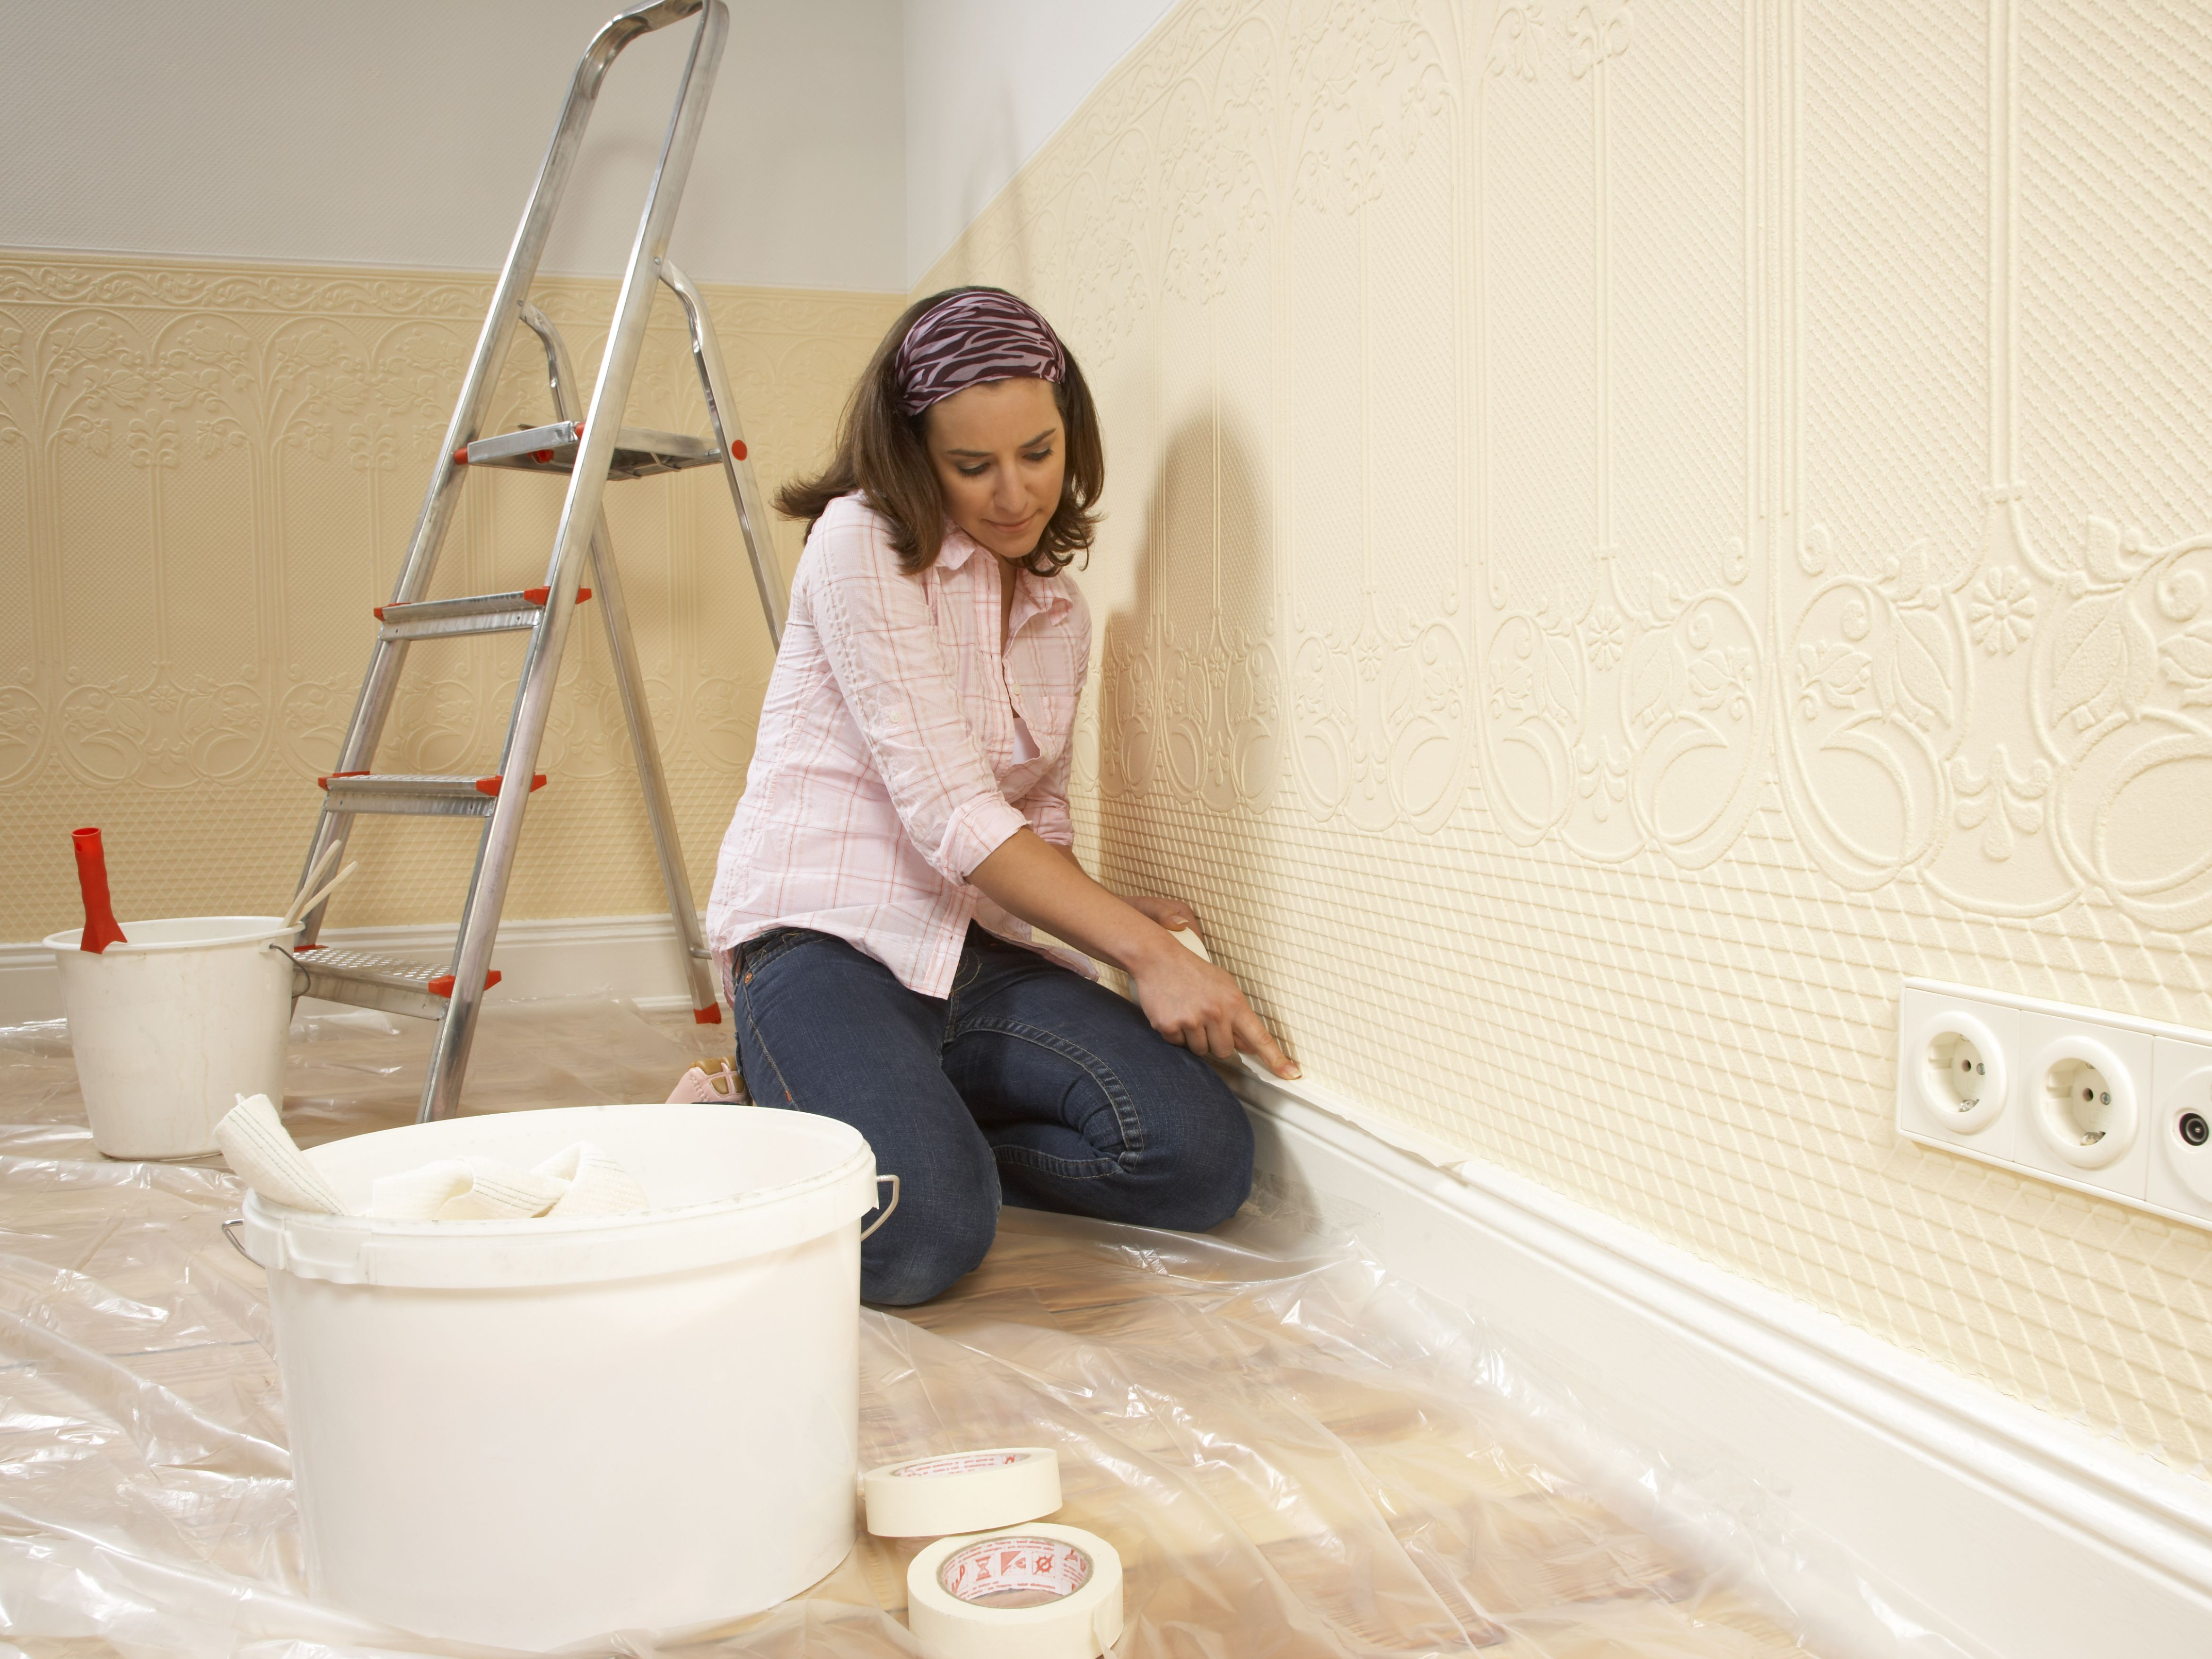 Best Paint Edgers: What to Know Before You Buy